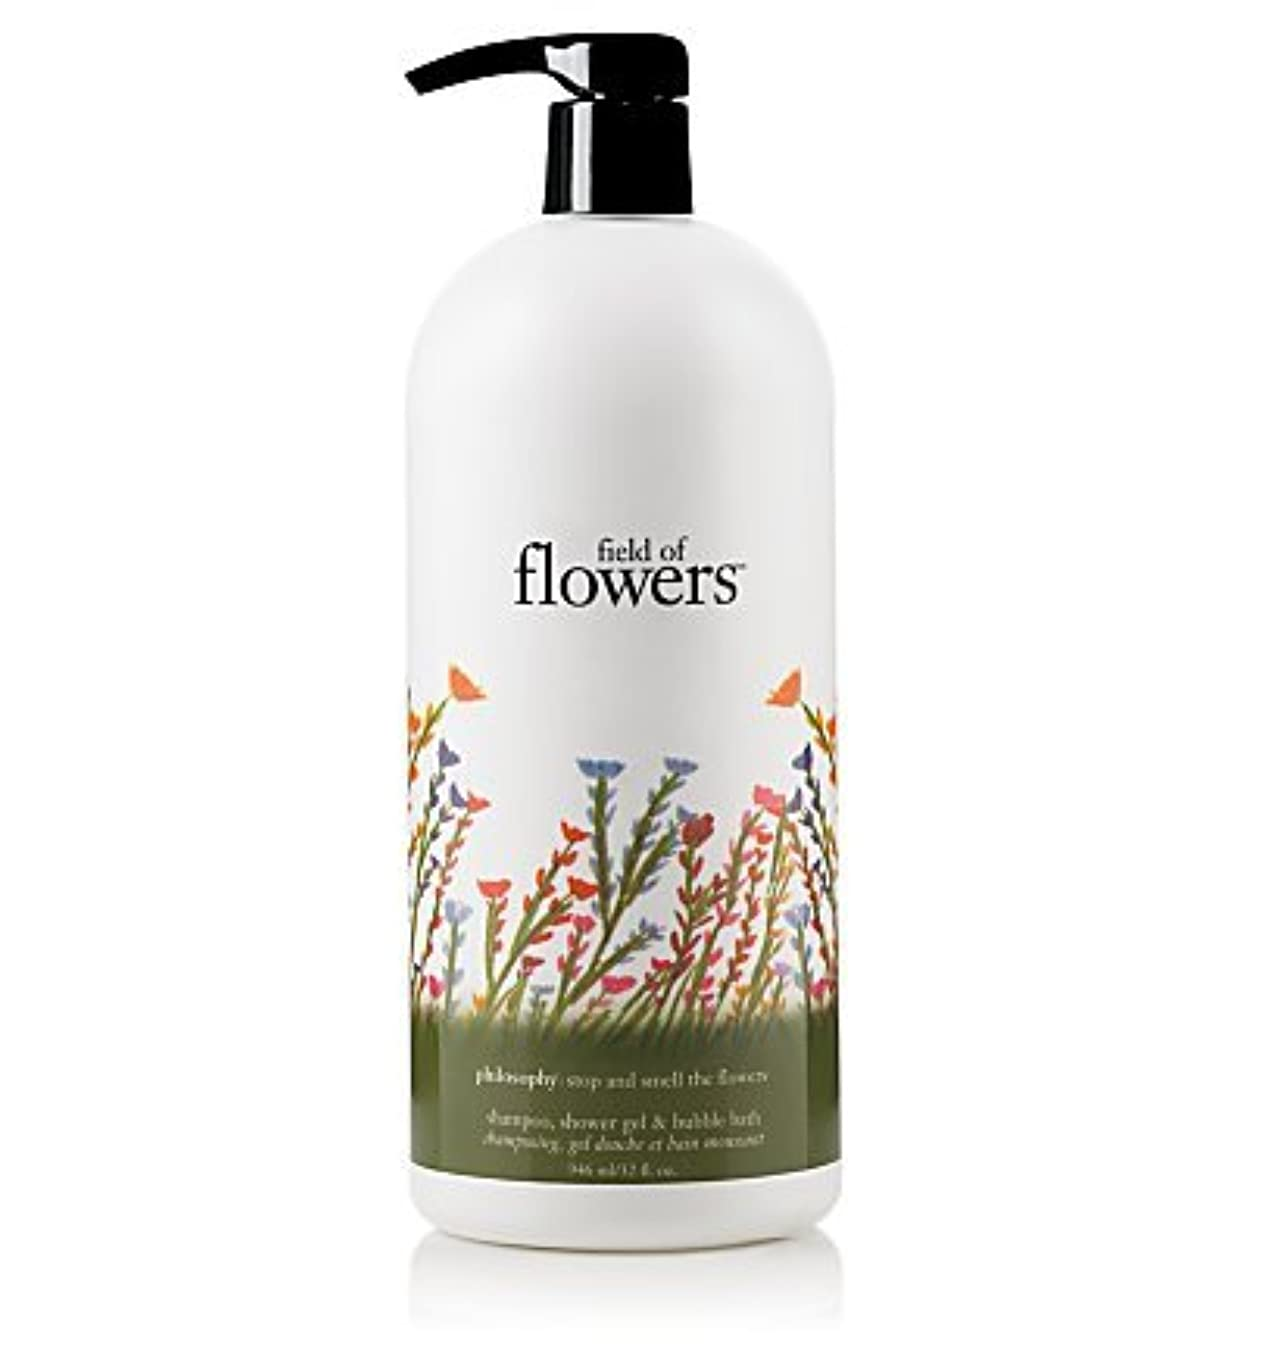 先駆者毒豊富にfield of flowers (フィールド オブ フラワーズ) 32.0 oz (960ml) shampoo, shower gel & bubble bath for Women